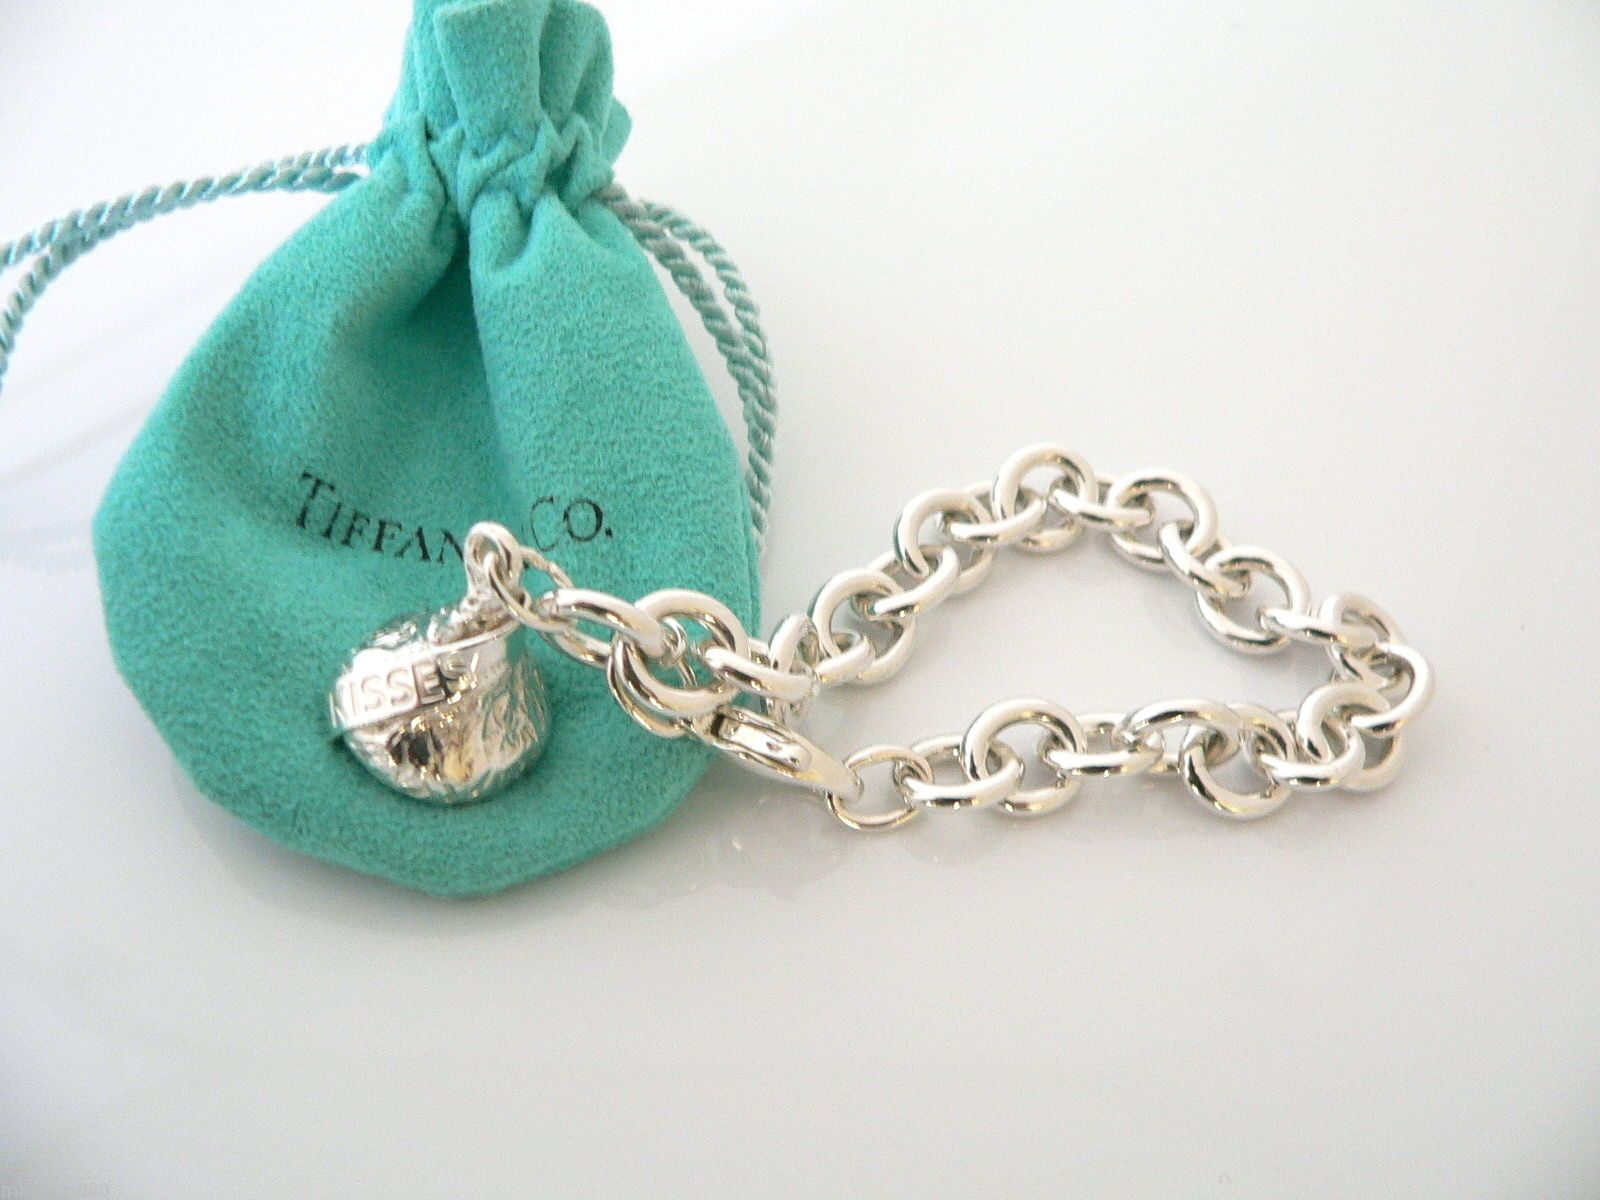 Tiffany Co silver Hershey Kiss Charm on a sterling ...